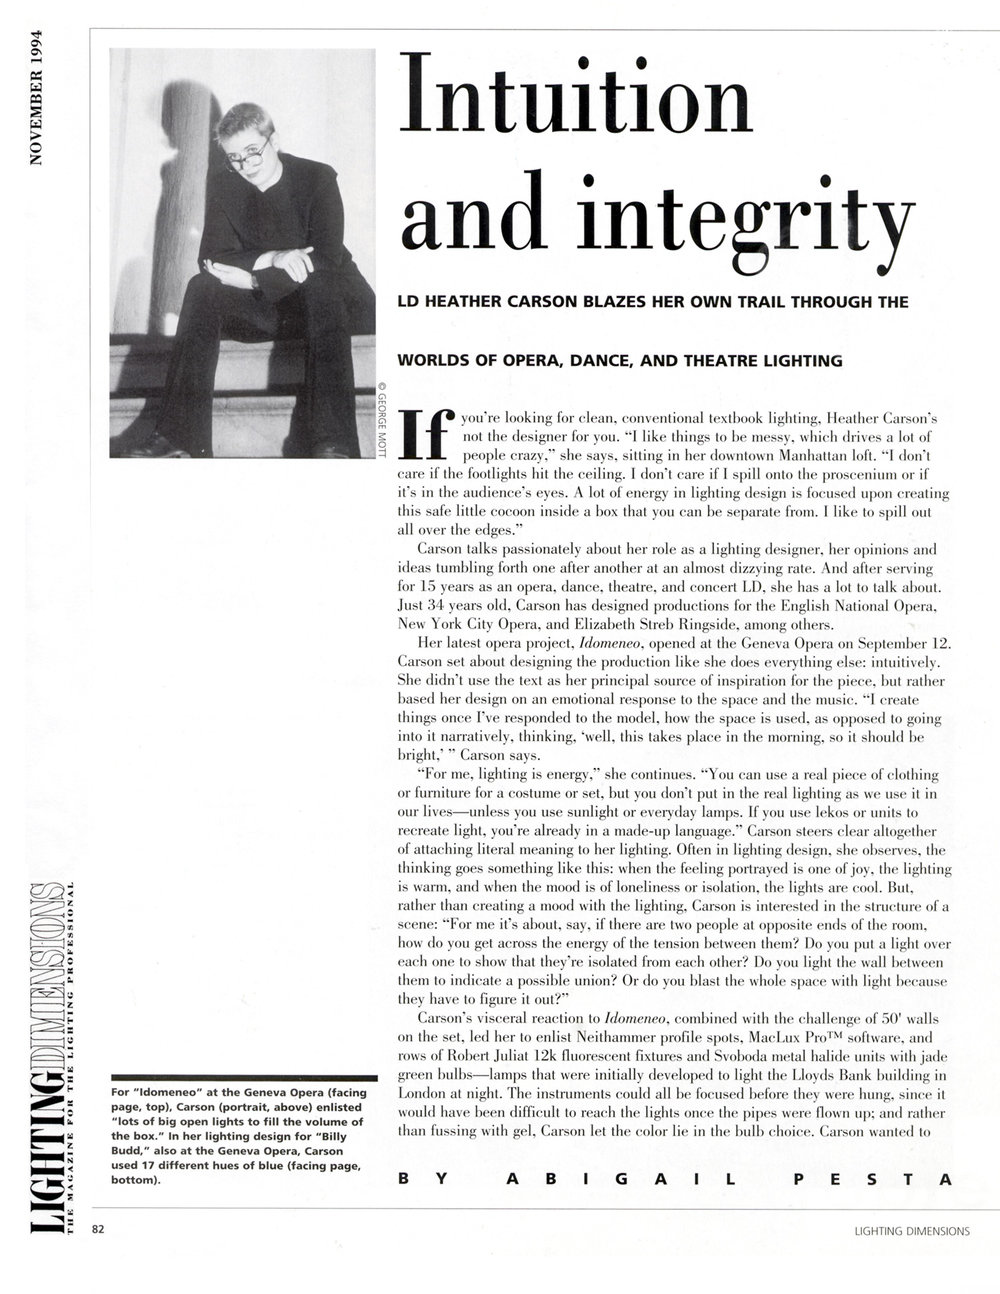 Intuition and integrity: LD Heather Carson Blazes Her Own Trail Through the Worlds of Opera, Dance, and Theatre Lighting